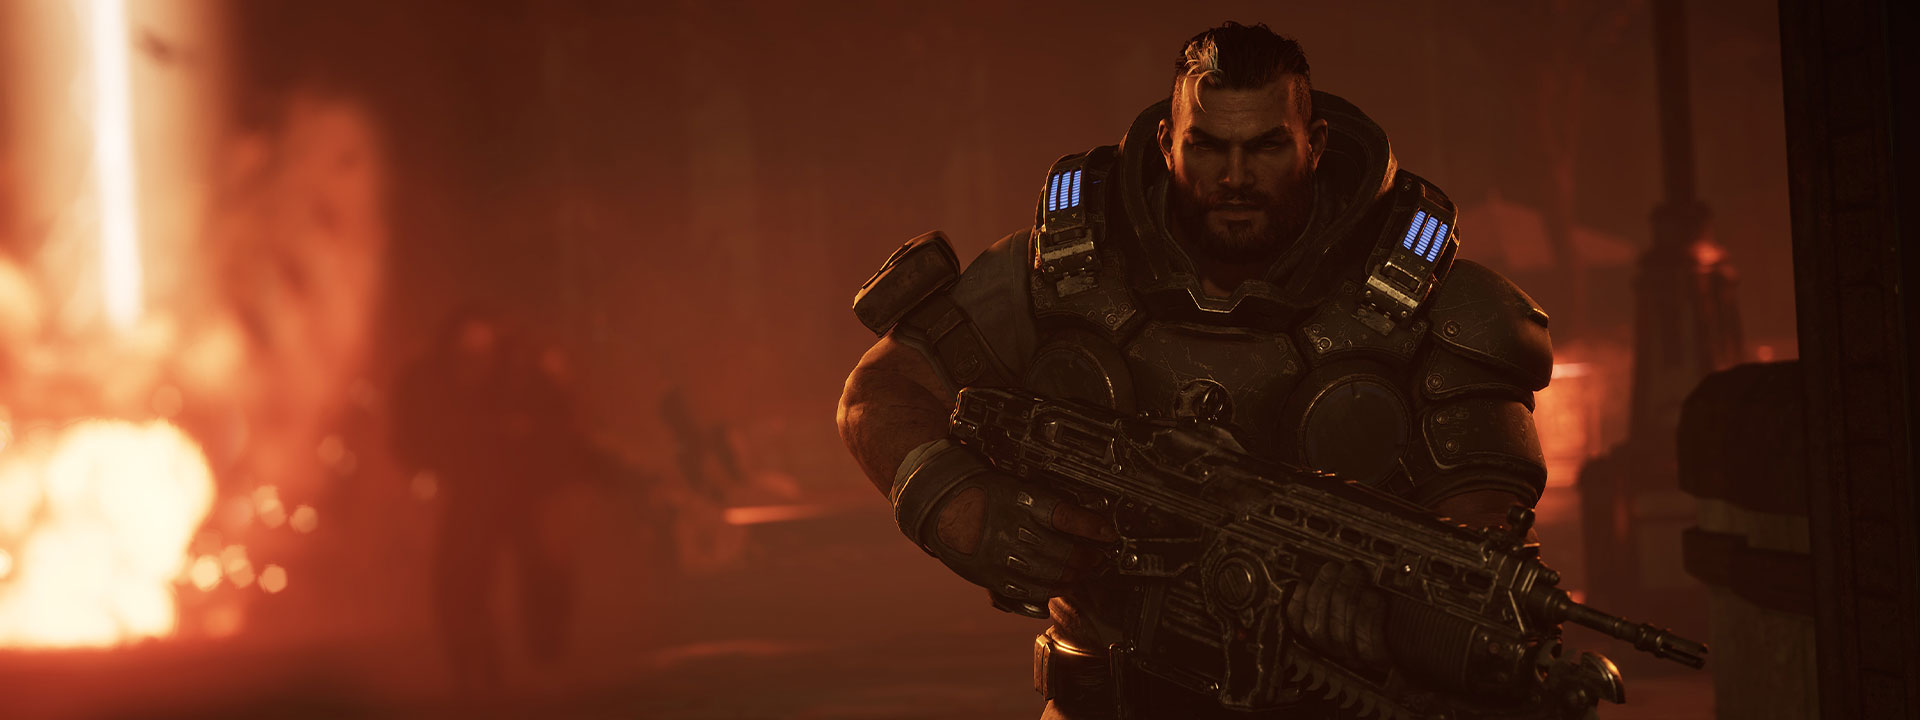 Gabe Diaz from Gears Tactics in full armour going away from an explosion